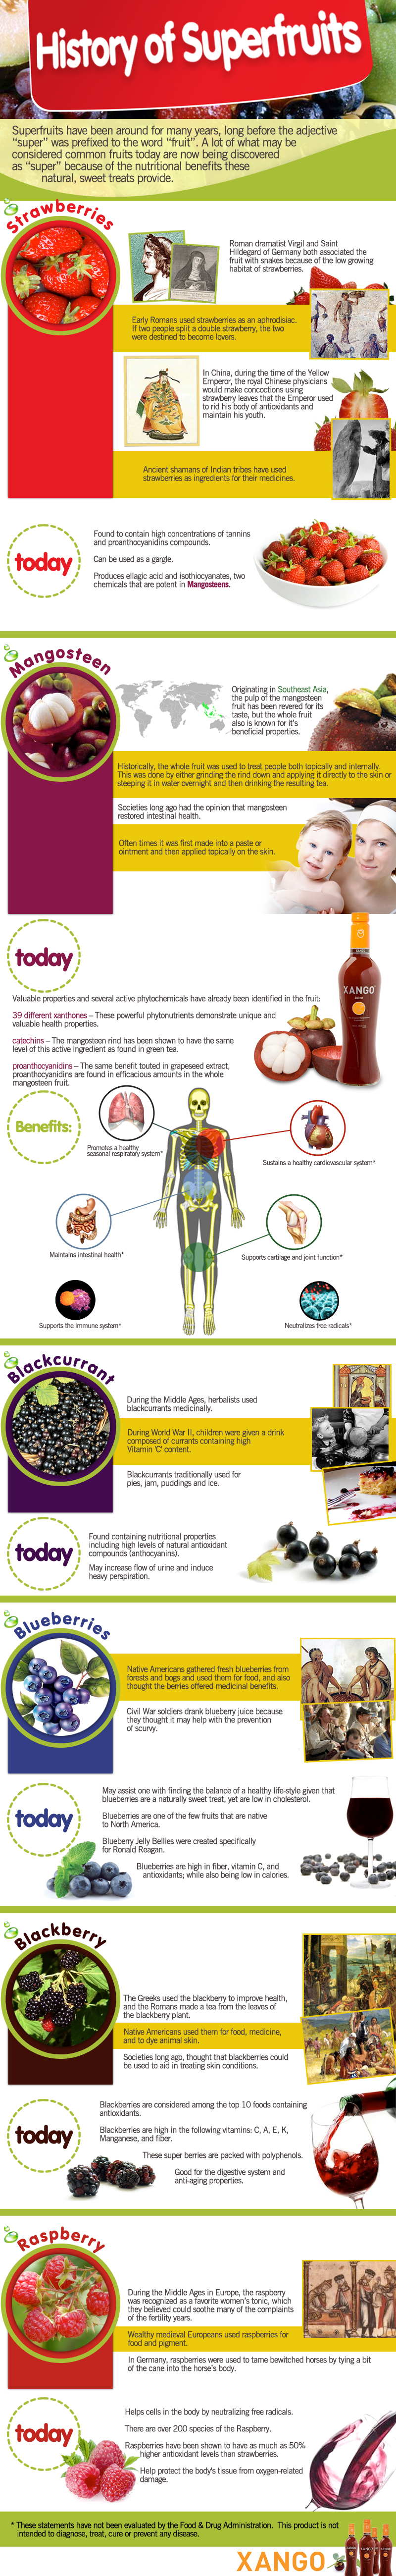 Some Facts about Superfruits